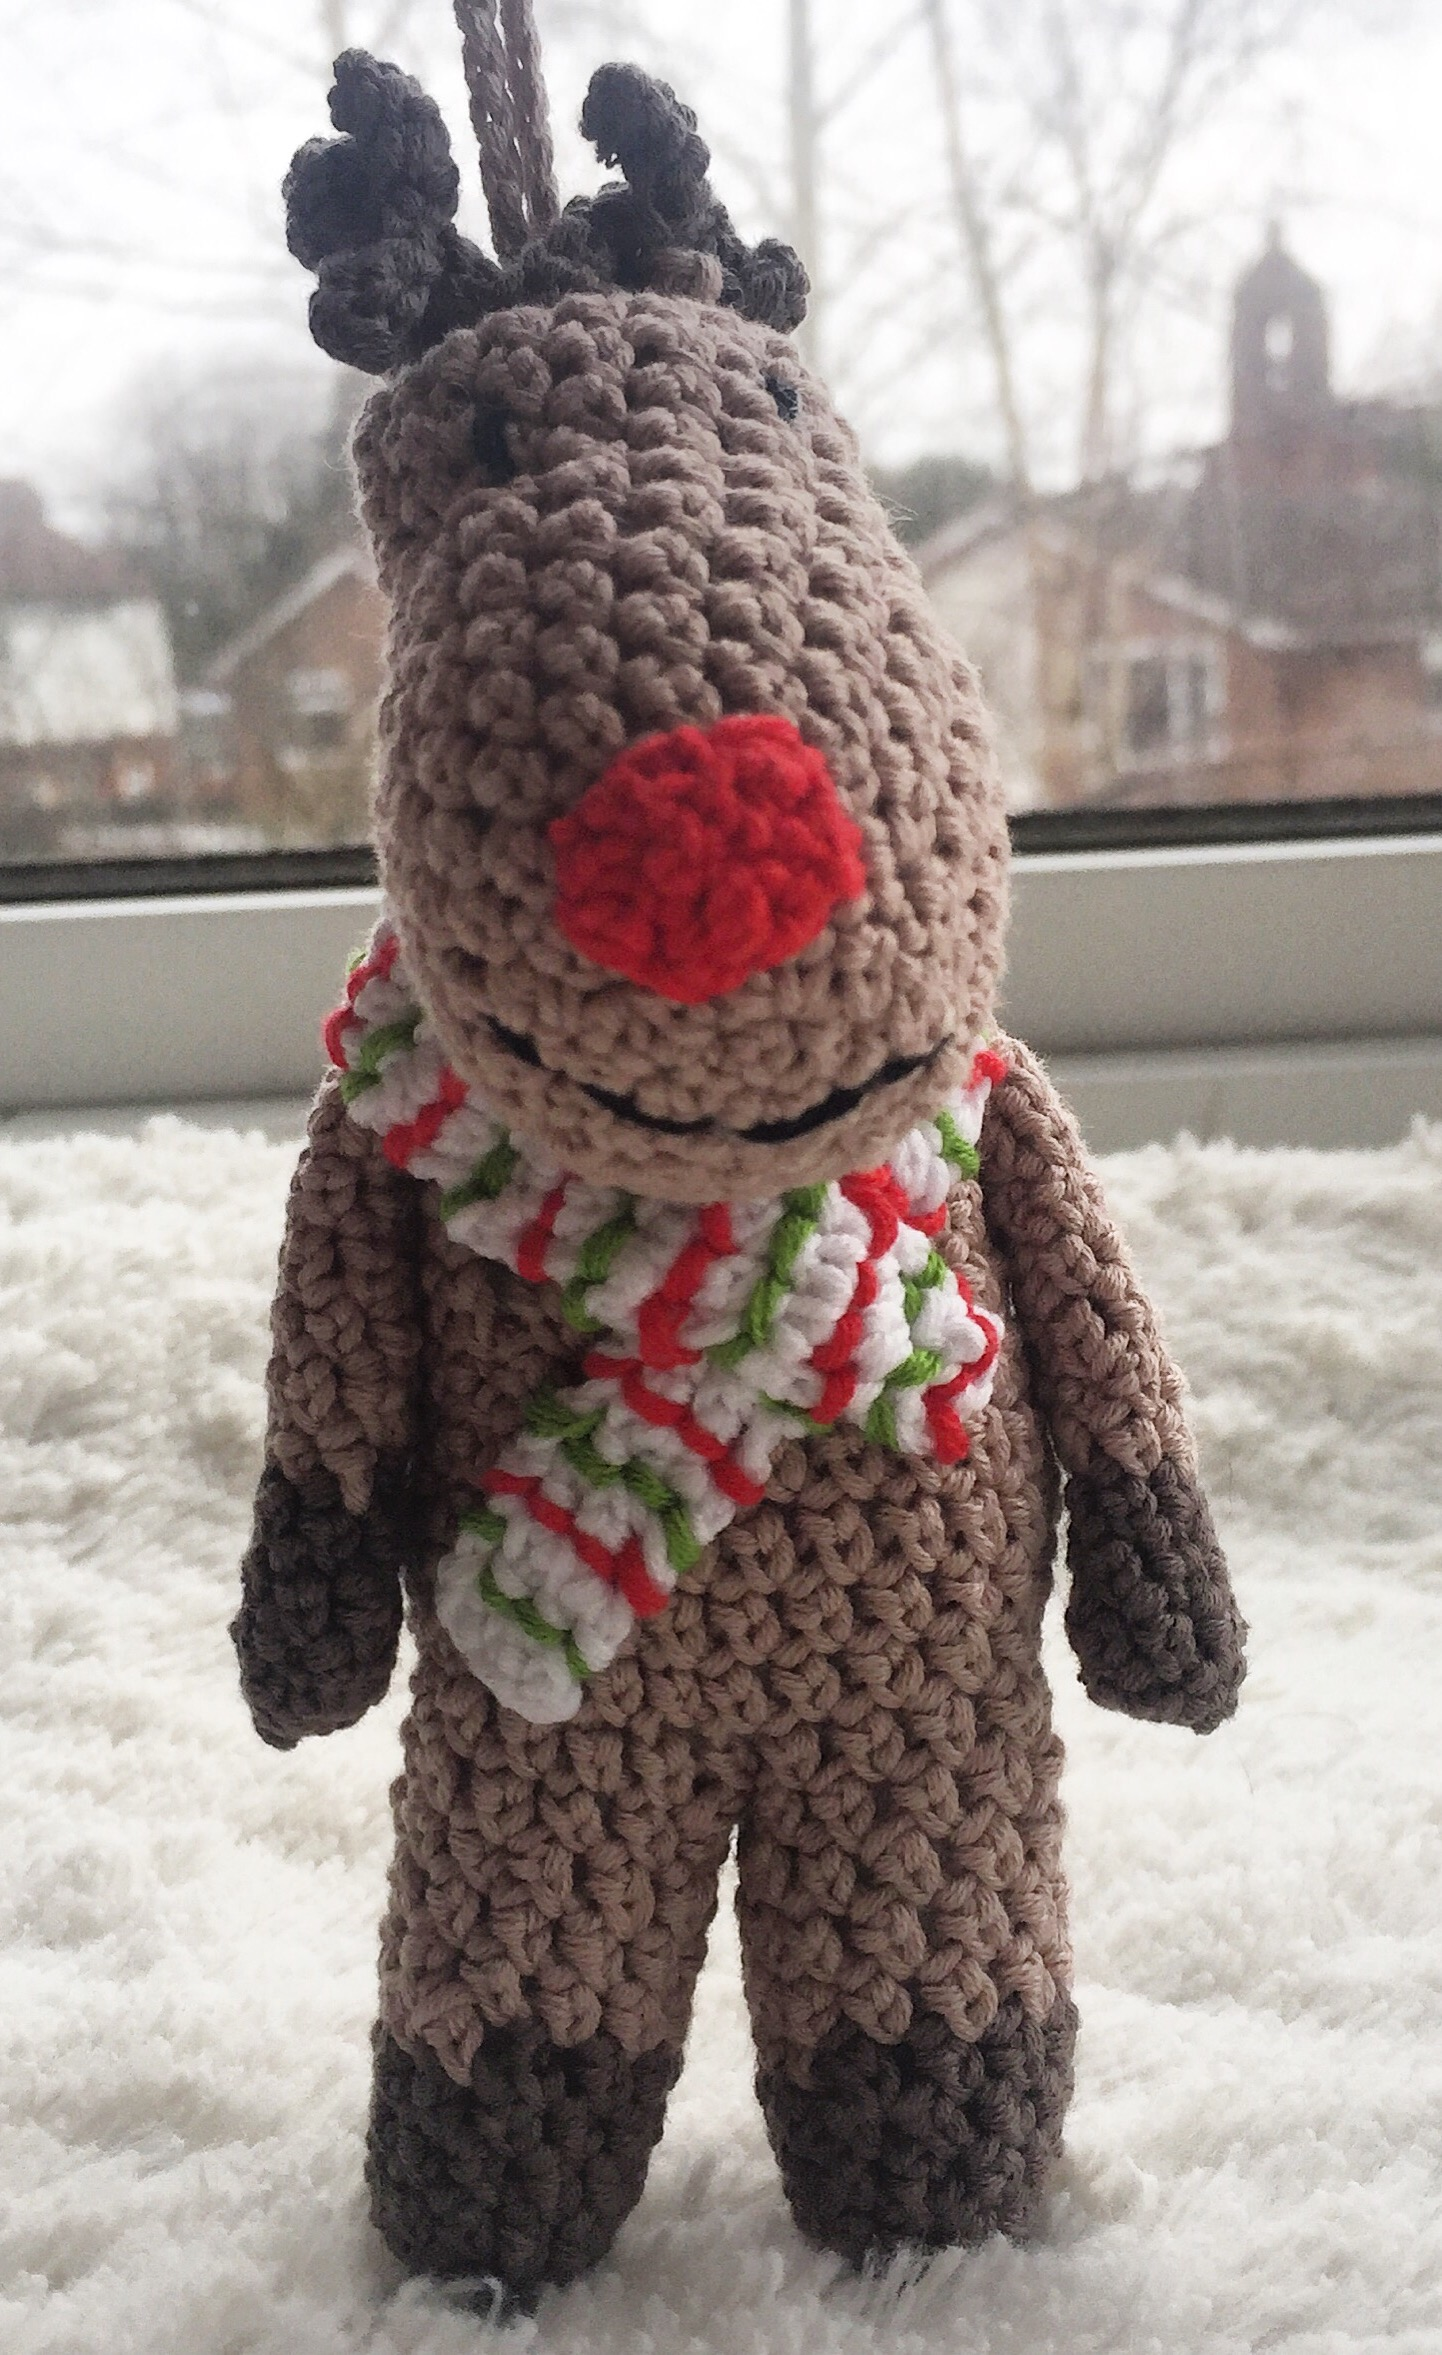 crocheted rudolph